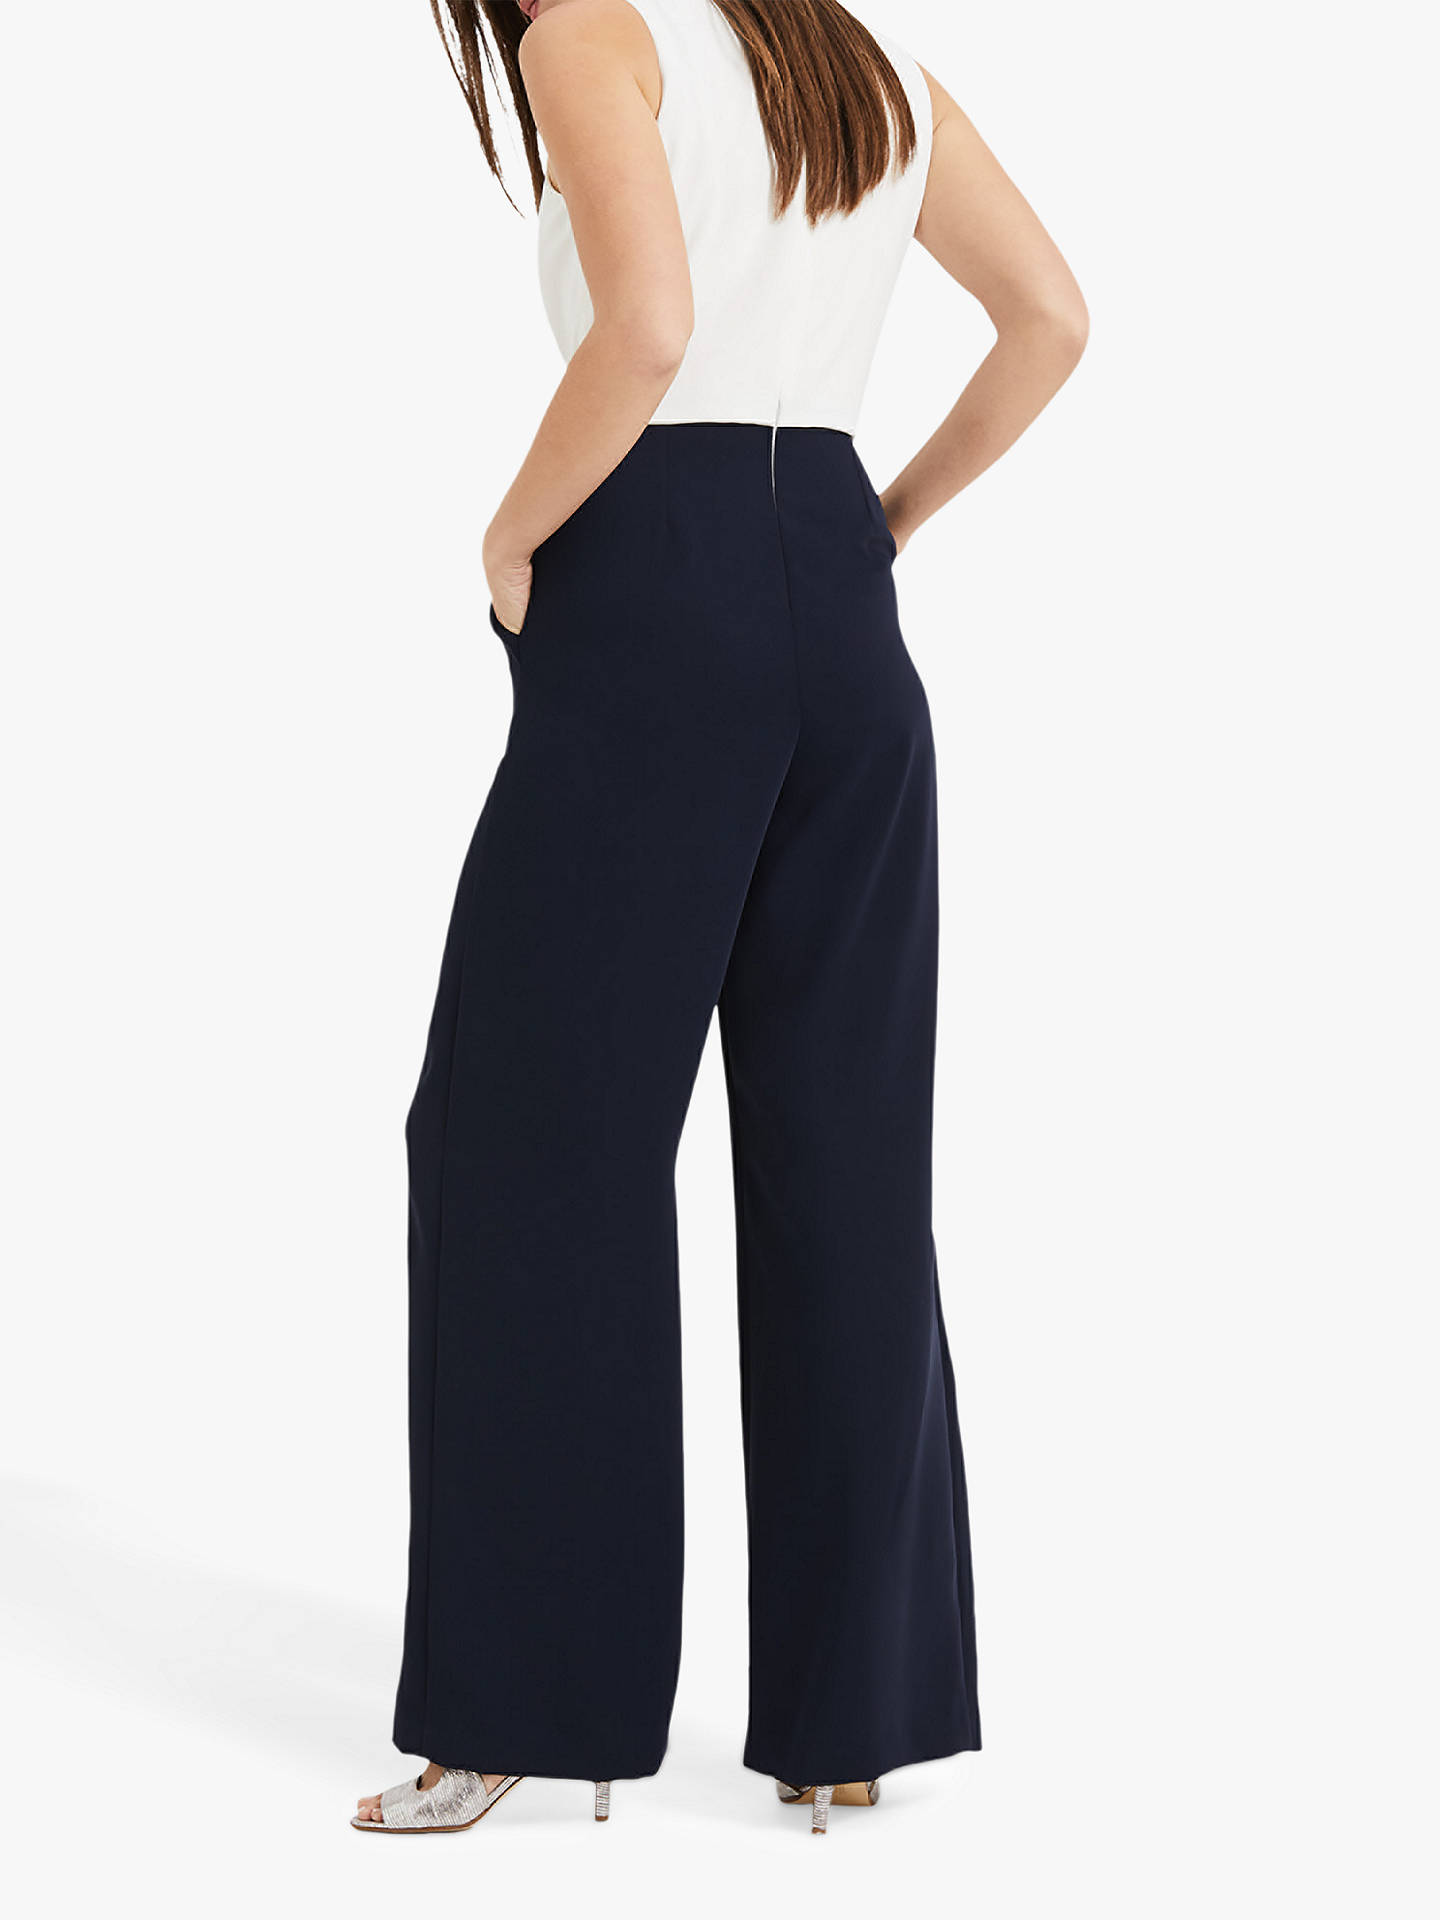 9a1e7ef15f8 Buy Phase Eight Maeve Frill Jumpsuit